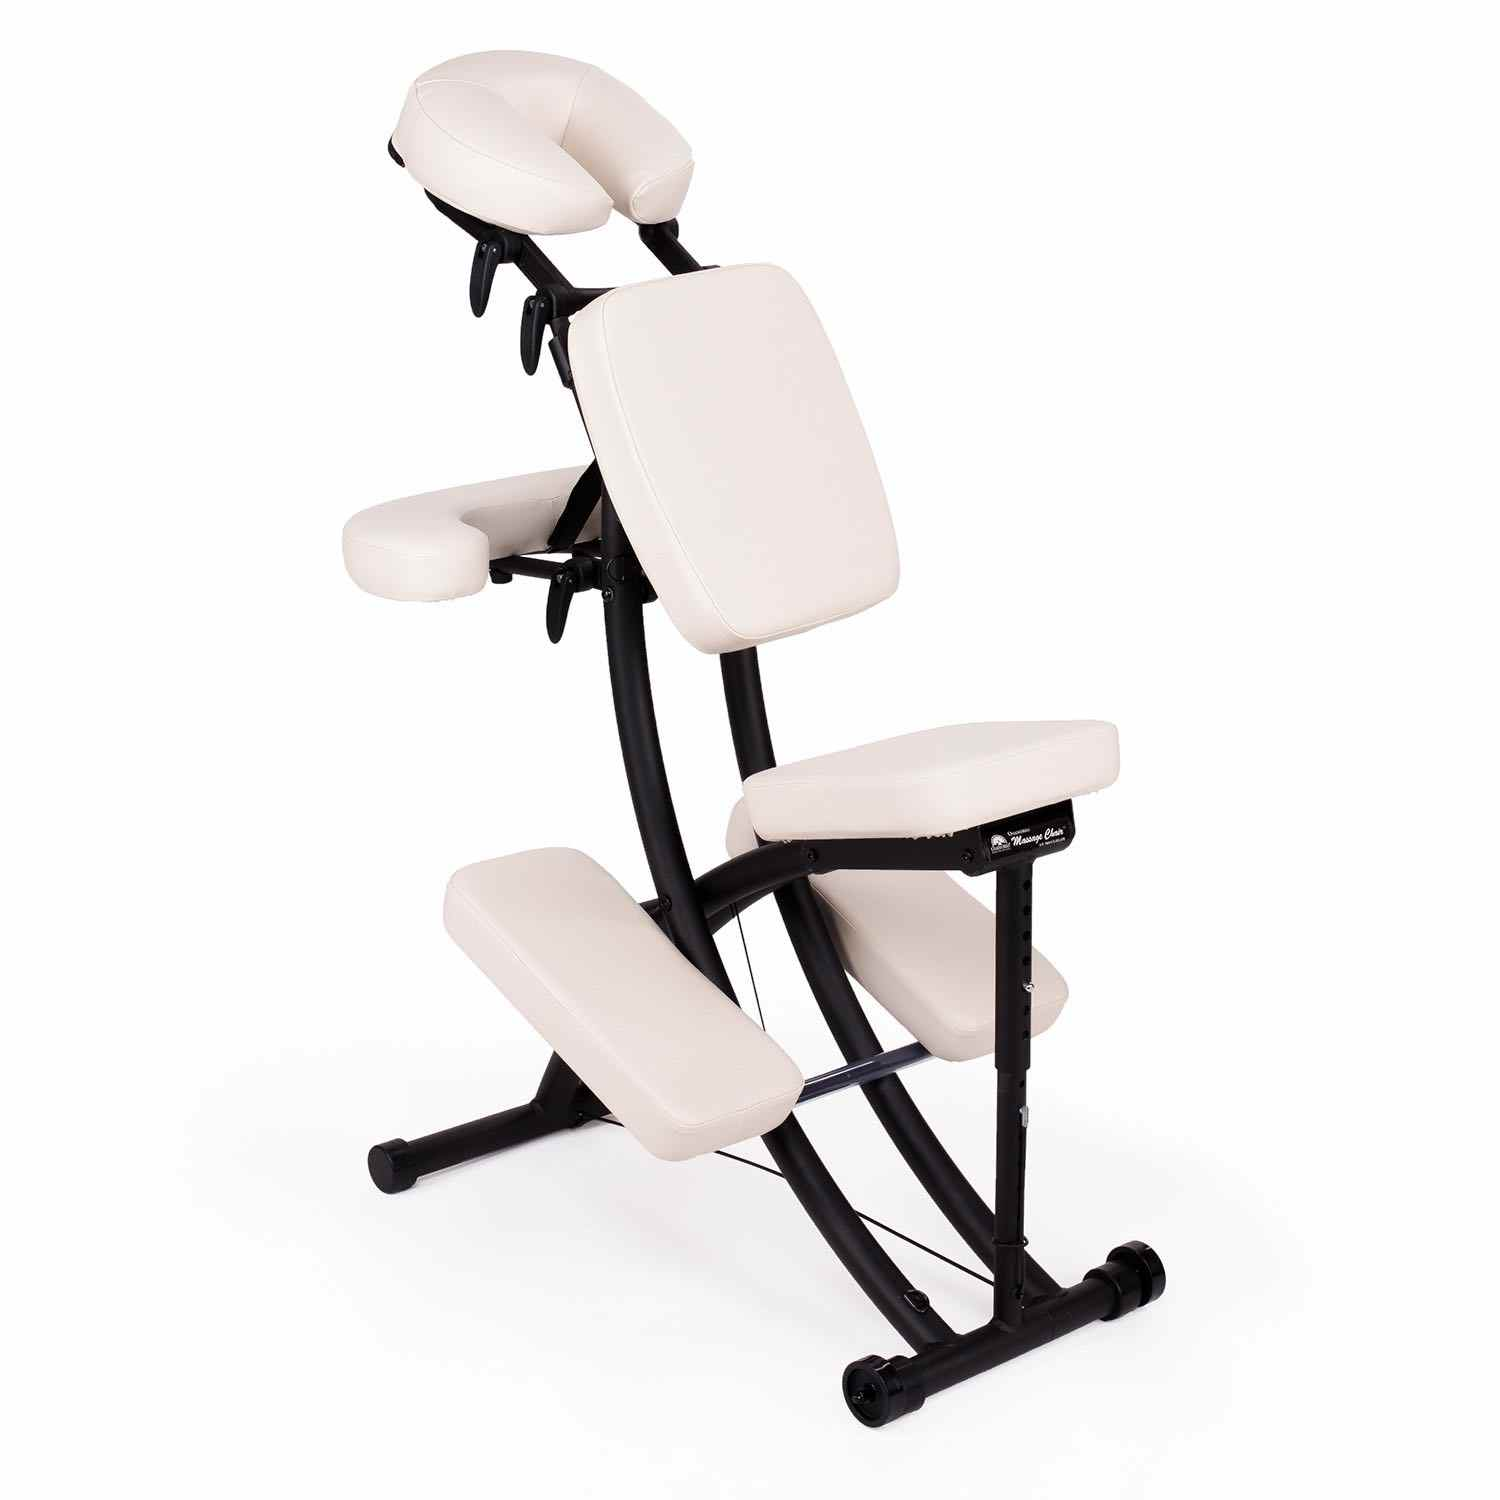 Chaise De Massage Prix Bodynova Tables De Massage équipement Tapis De Yoga